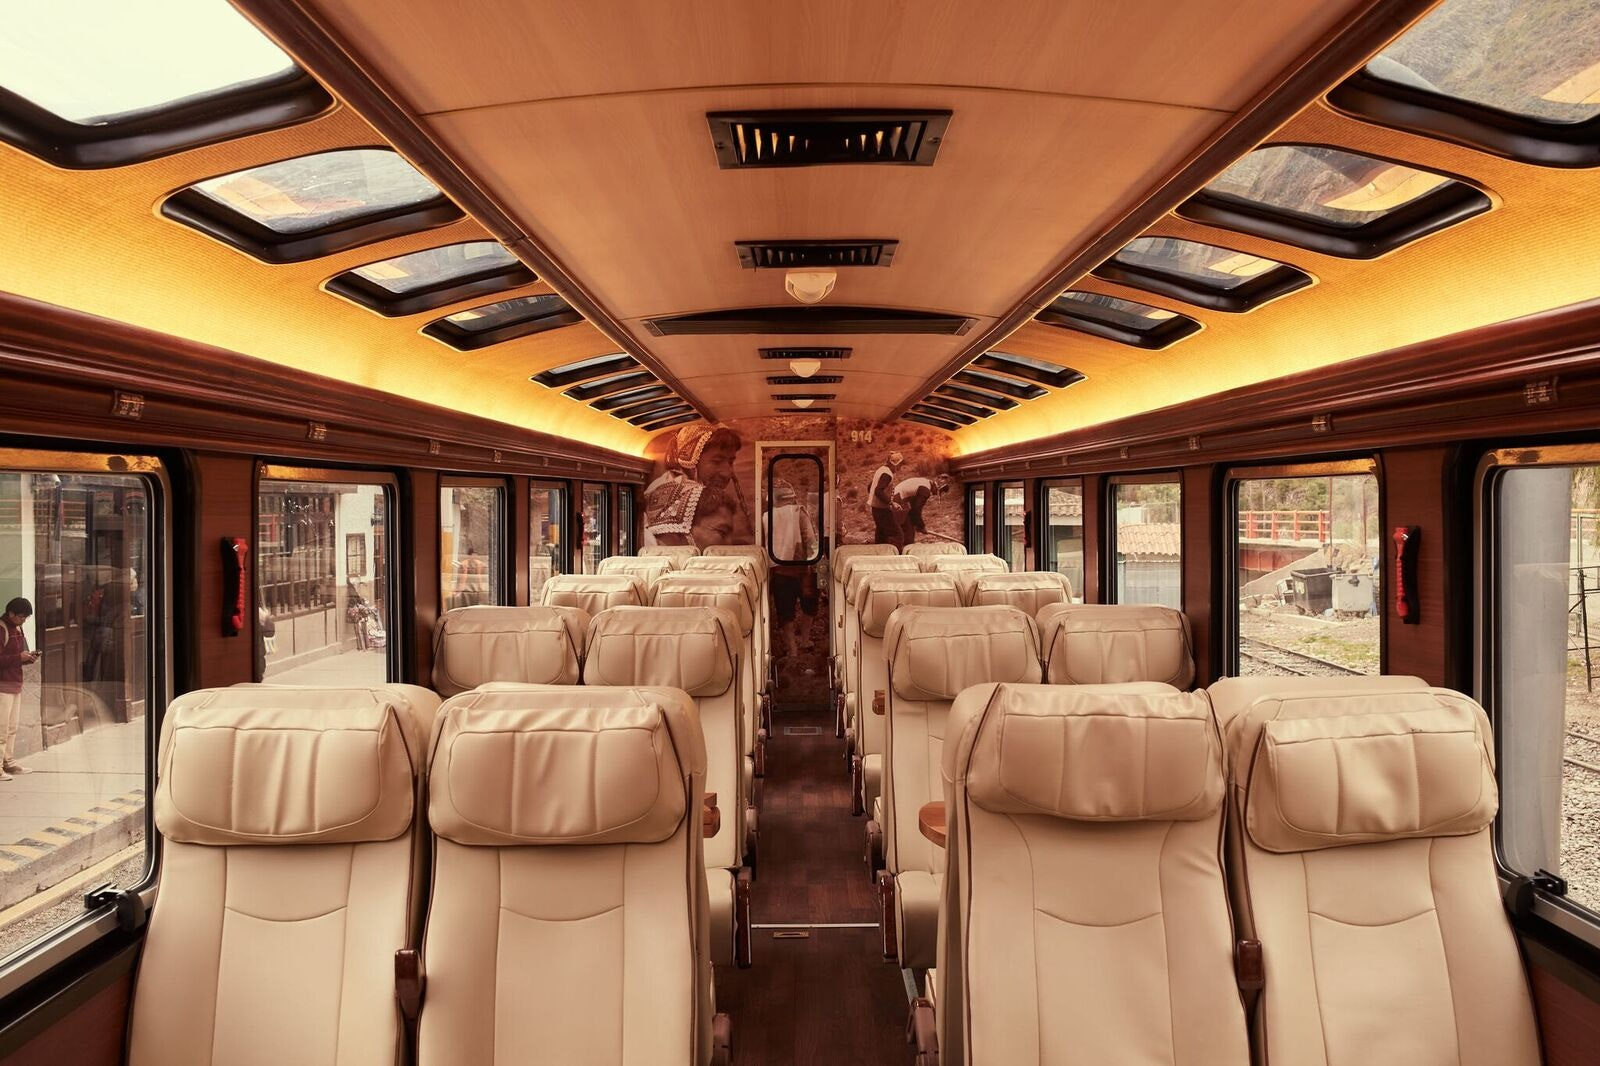 The Voyager is Inca Rail's largest train to Machu Picchu.